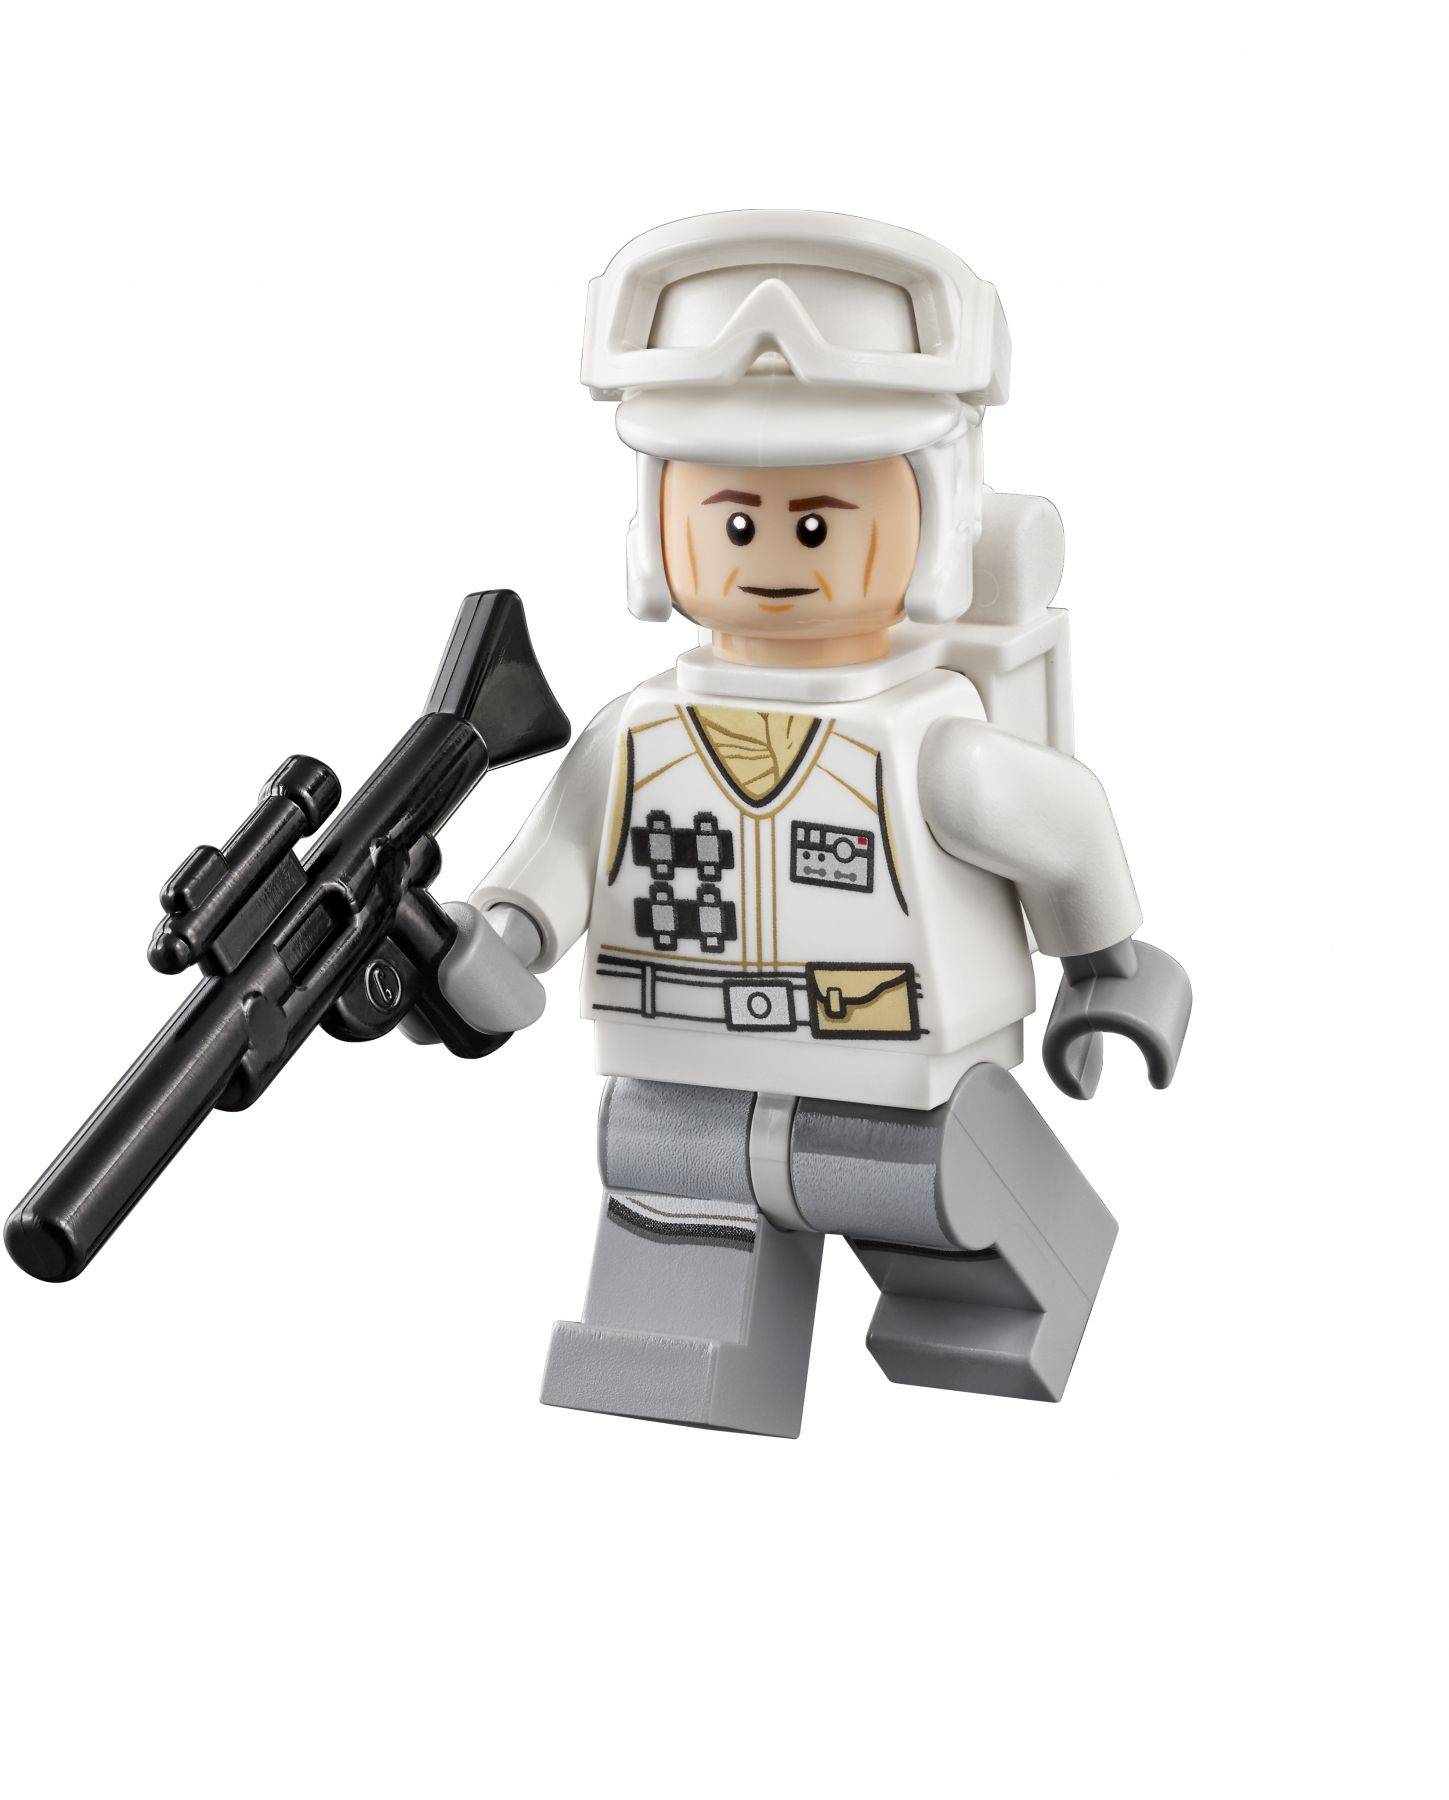 LEGO Star Wars 75098 Angriff auf Hoth™ LEGO-75098-Assault-on-Hoth-Minifigure_05.jpg